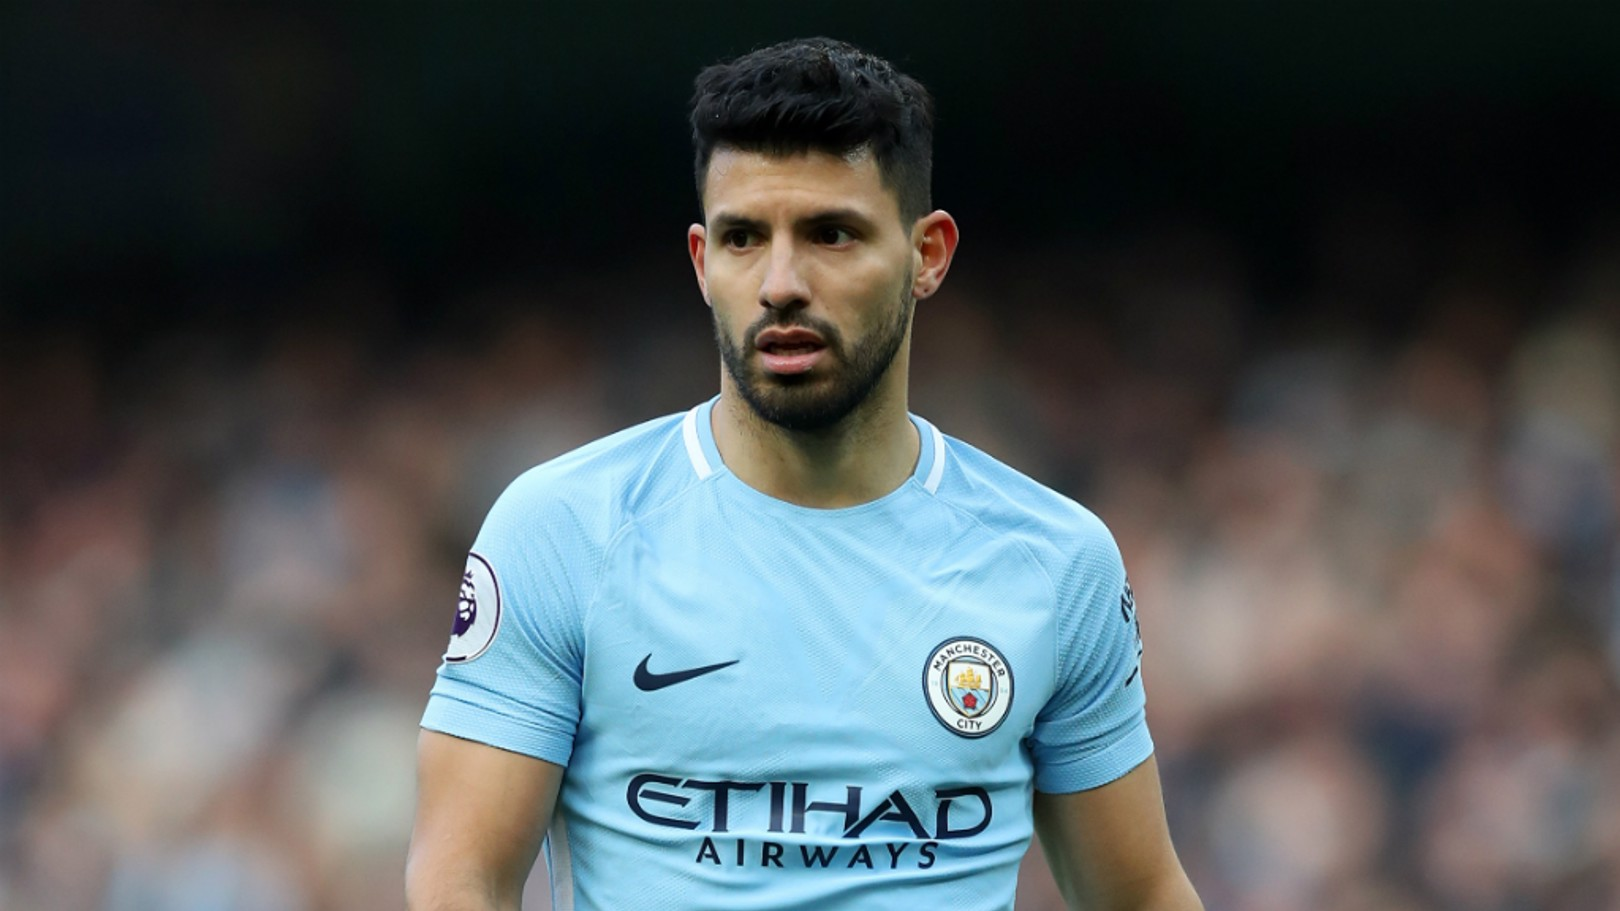 SERGIO AGUERO: The Argentine striker suffered a knee injury in training over the weekend and will be assessed.